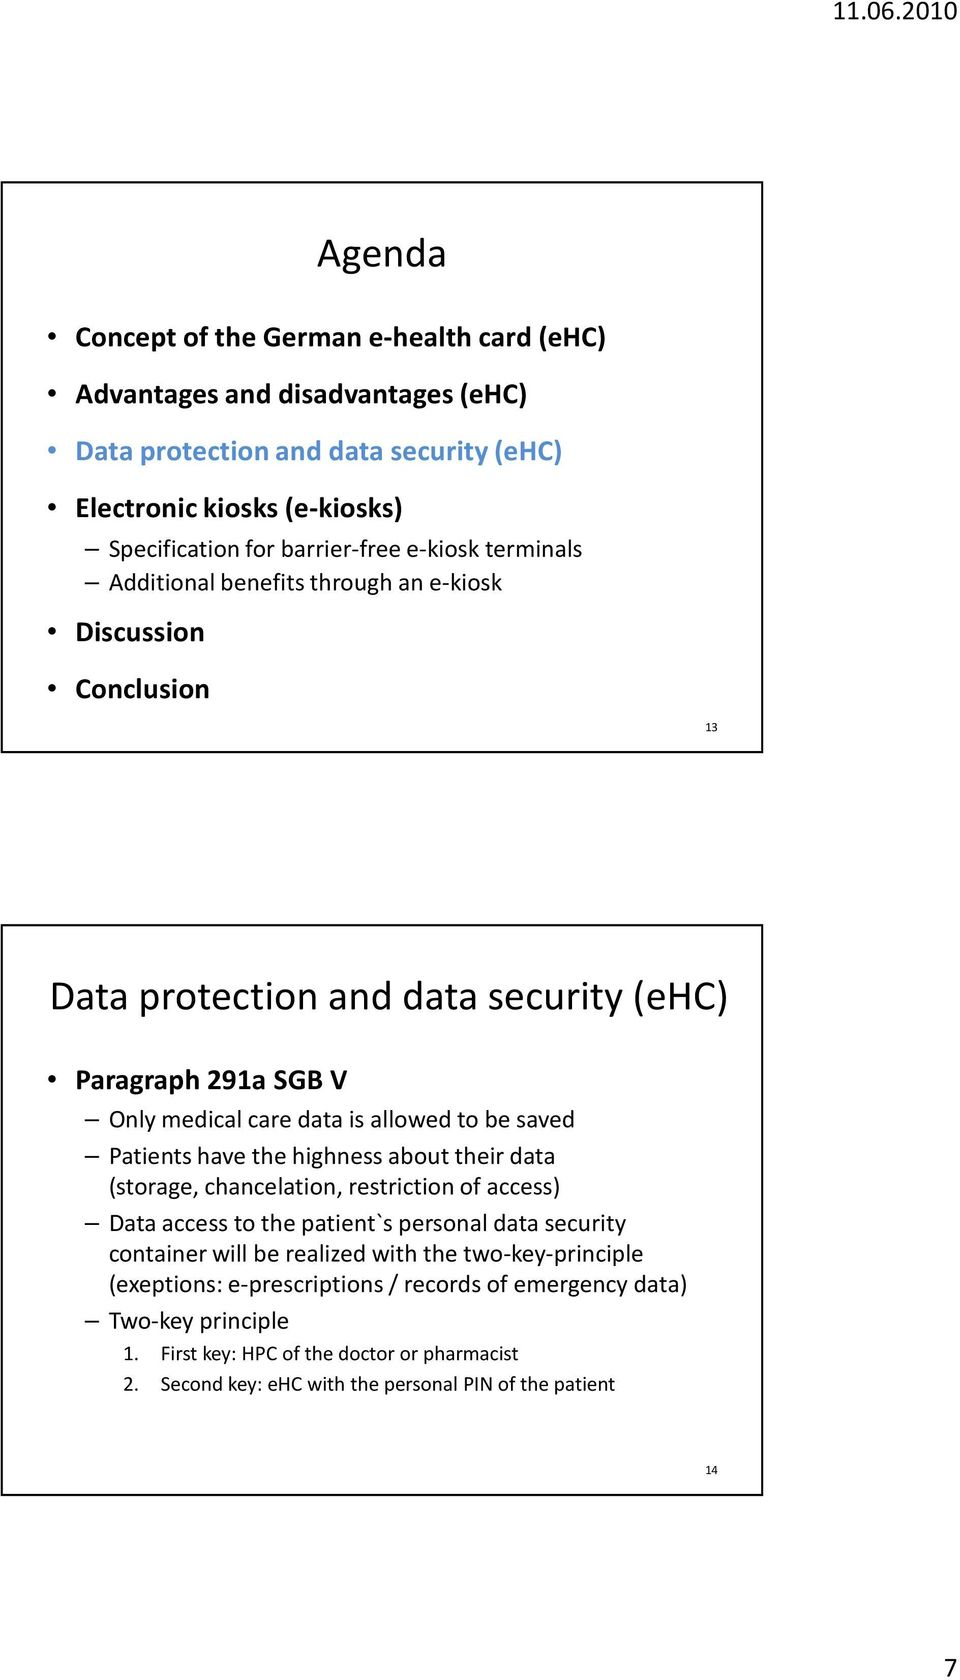 saved Patients have the highness about their data (storage, chancelation, restriction of access) Data access to the patient`s personal data security container will be realized with the